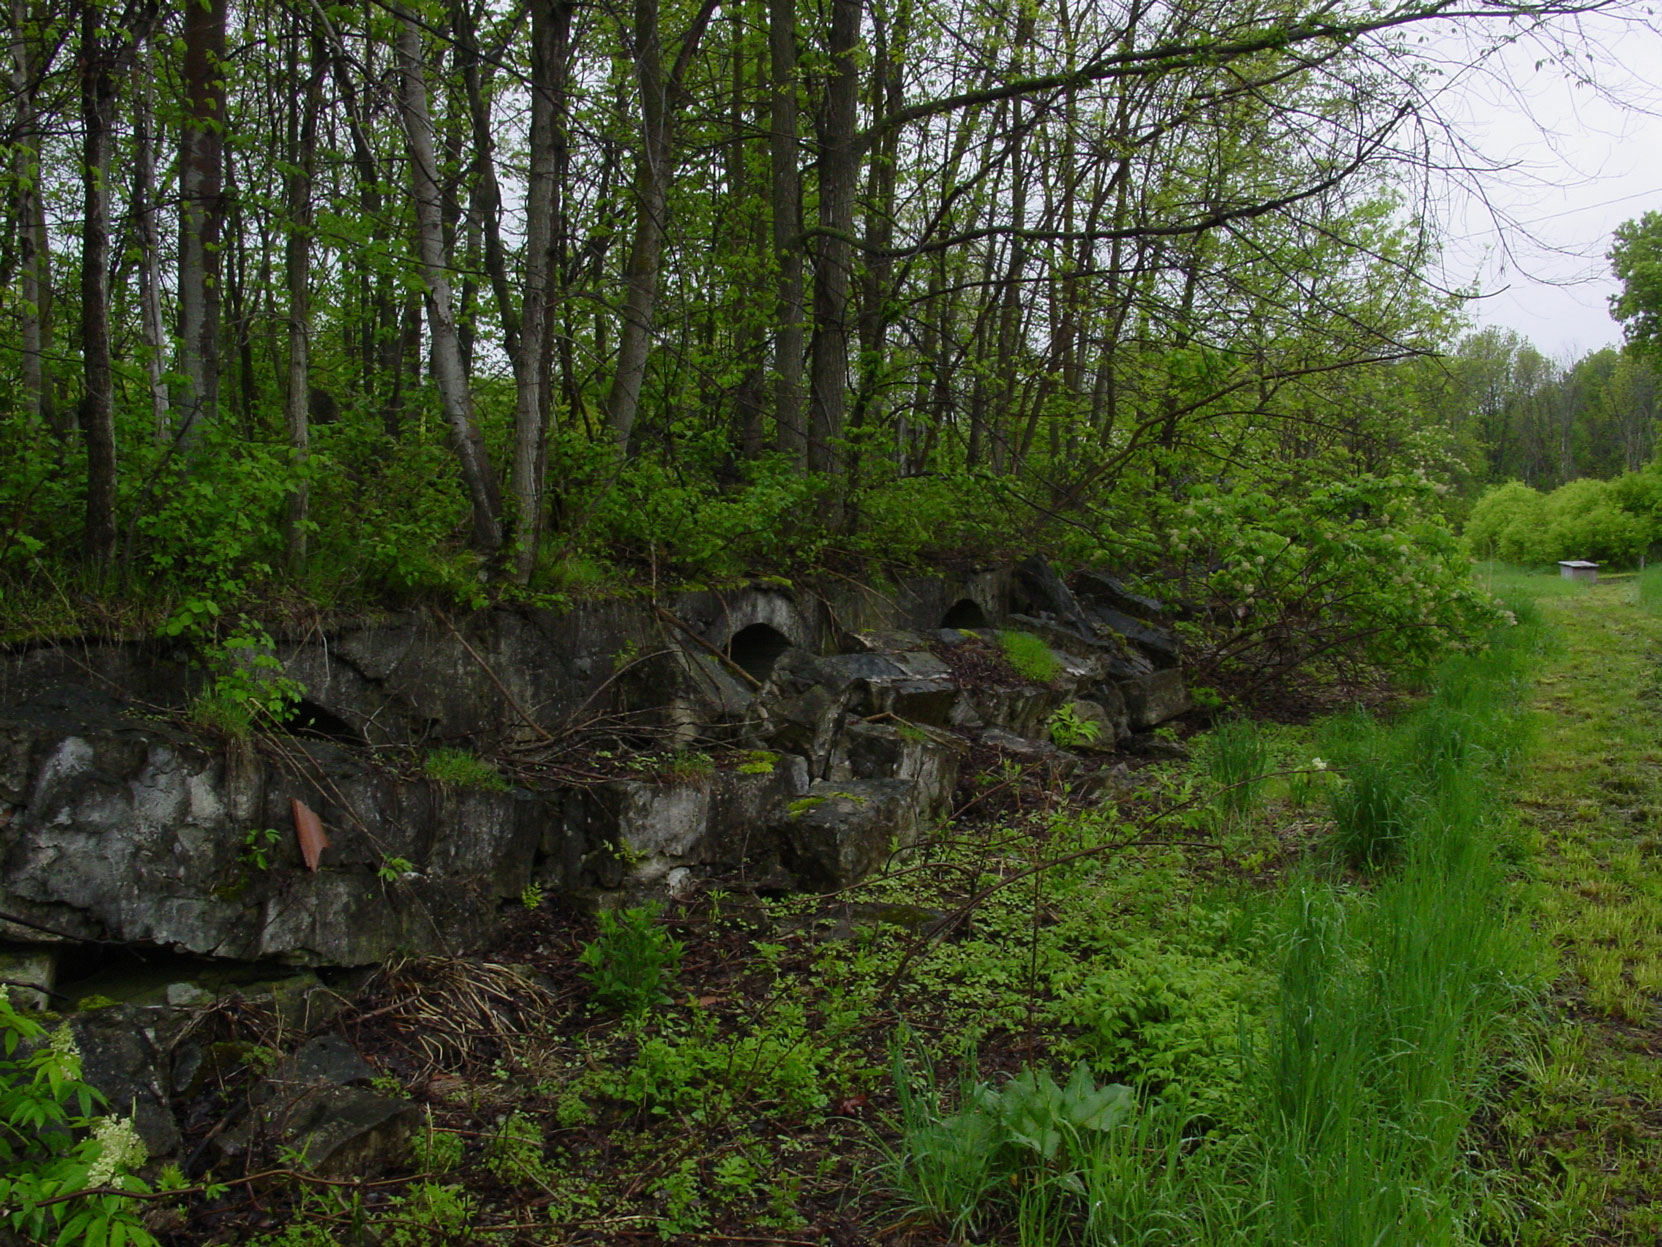 Remains of storage bins among the ruins of the Owen Sound Portland Cement Company factory, Shallow Lake, Ontario, 2003. (photo by author)